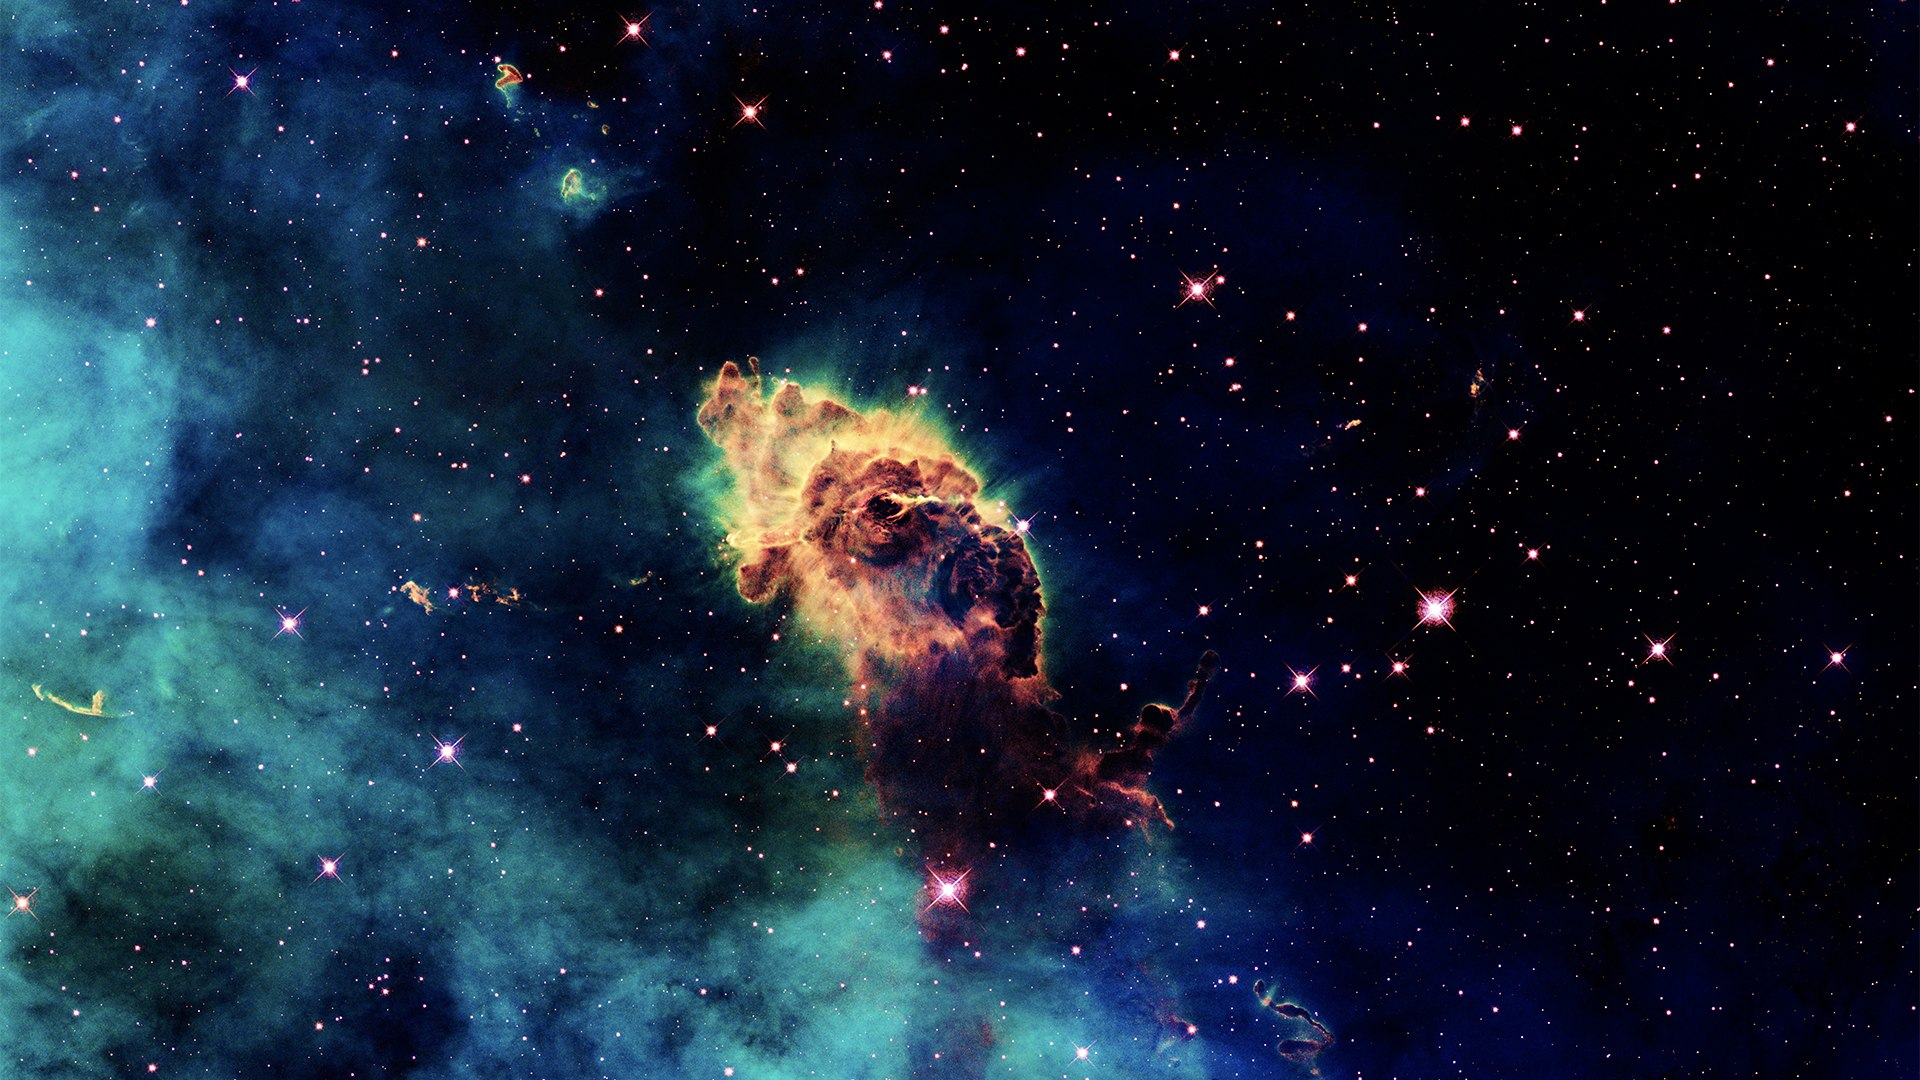 nasa space wallpaperscomputer wallpaper - photo #49